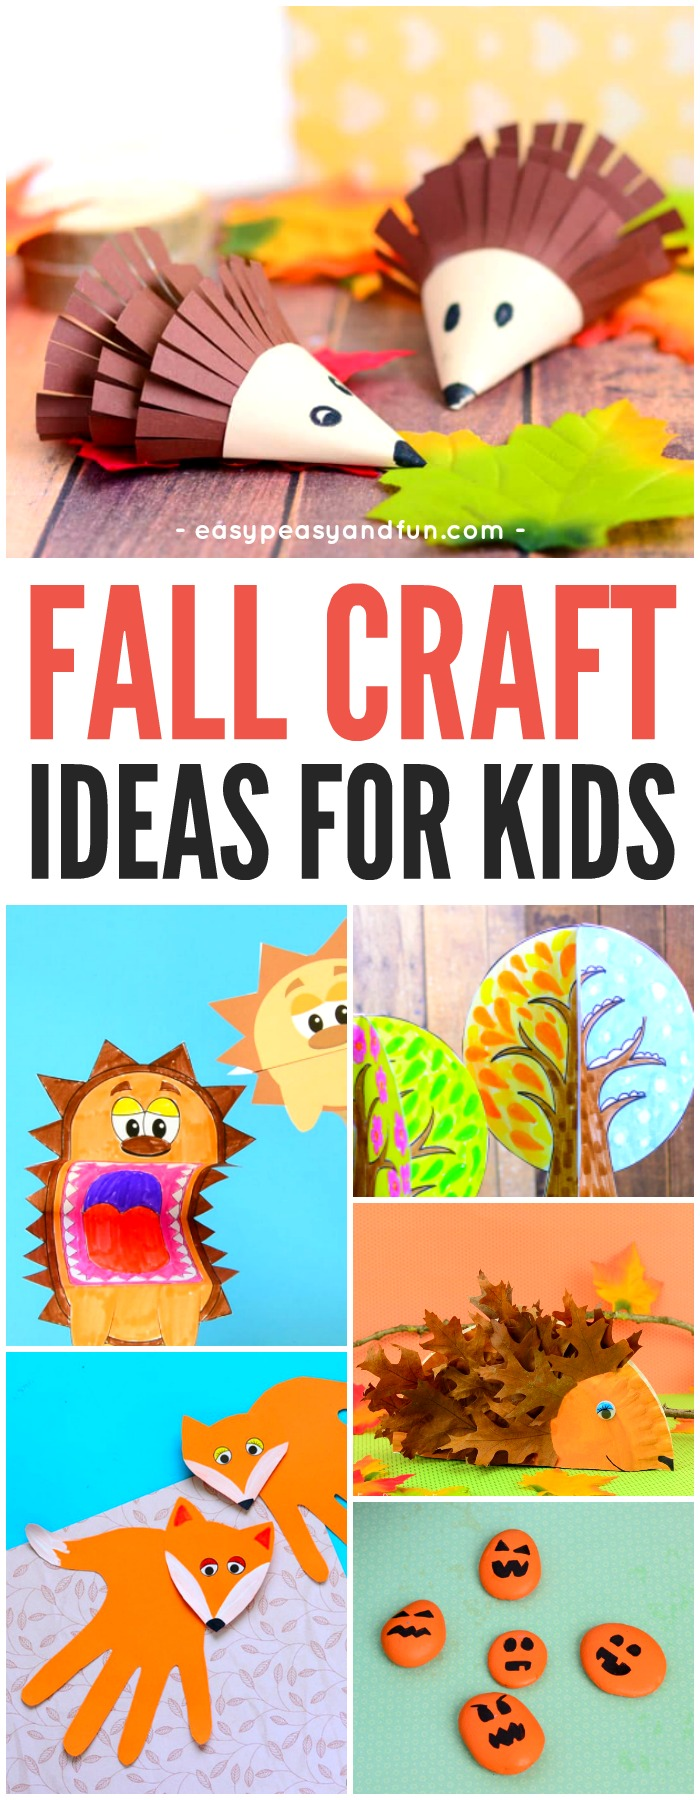 Fall Crafts For Kids. Fall Art and Craft Ideas for Kids With Printable Craft Templates.